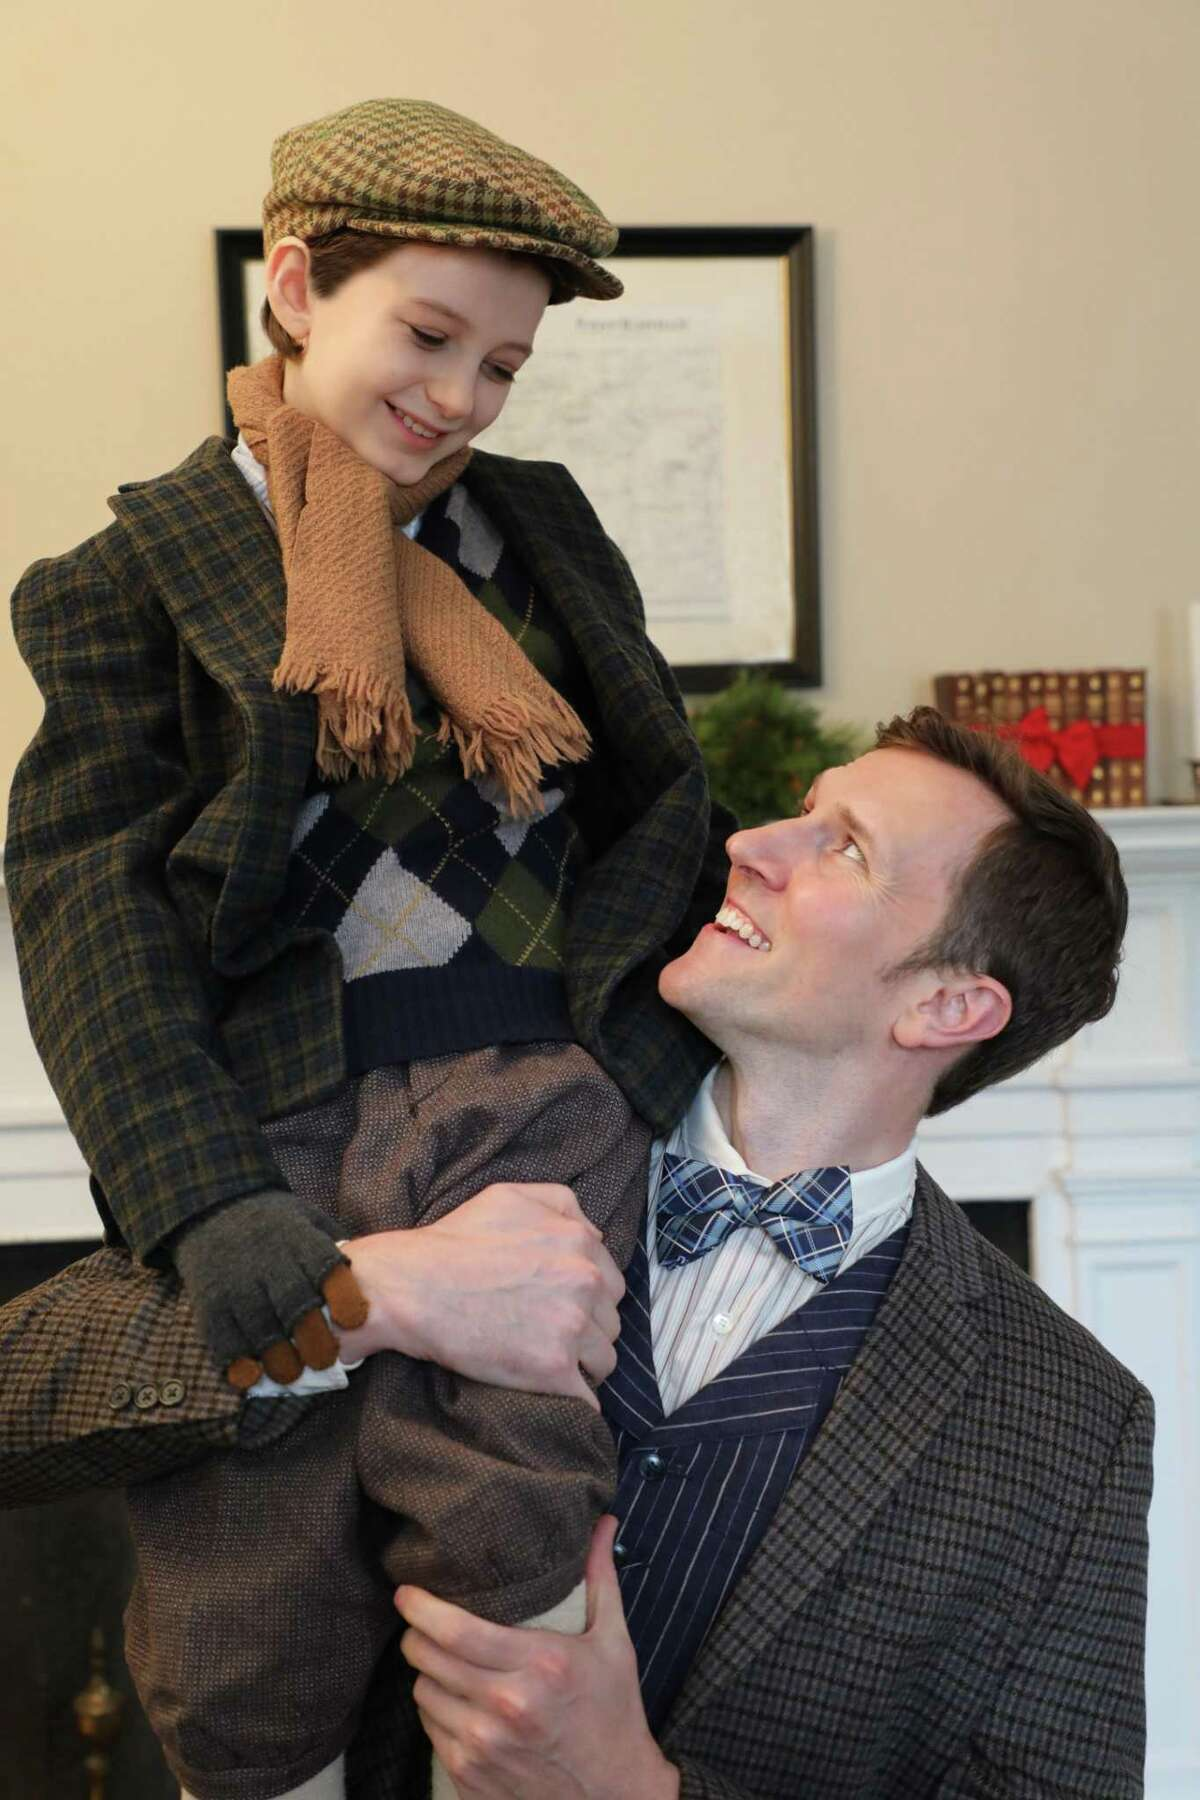 Connecticut native Robert Berson (Tiny Tim), left, with Matt Gibson (Bob Cratchit), in a scene from